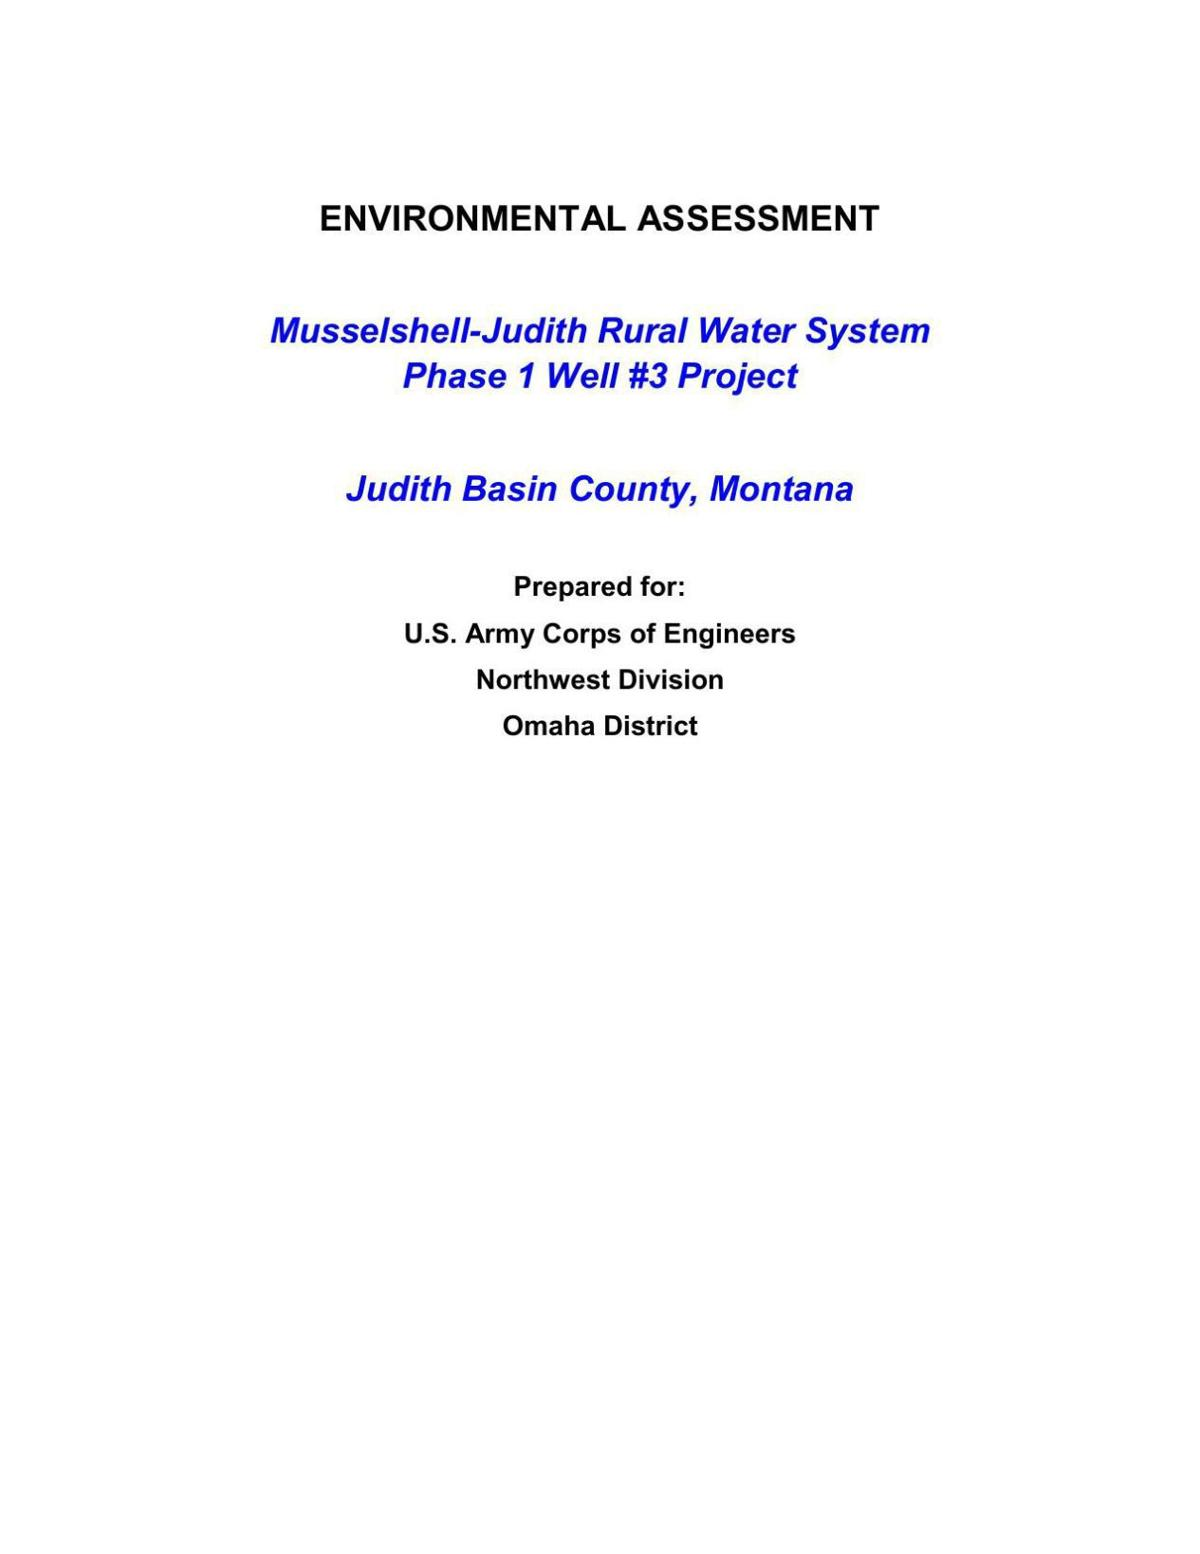 Environmental assessment for well